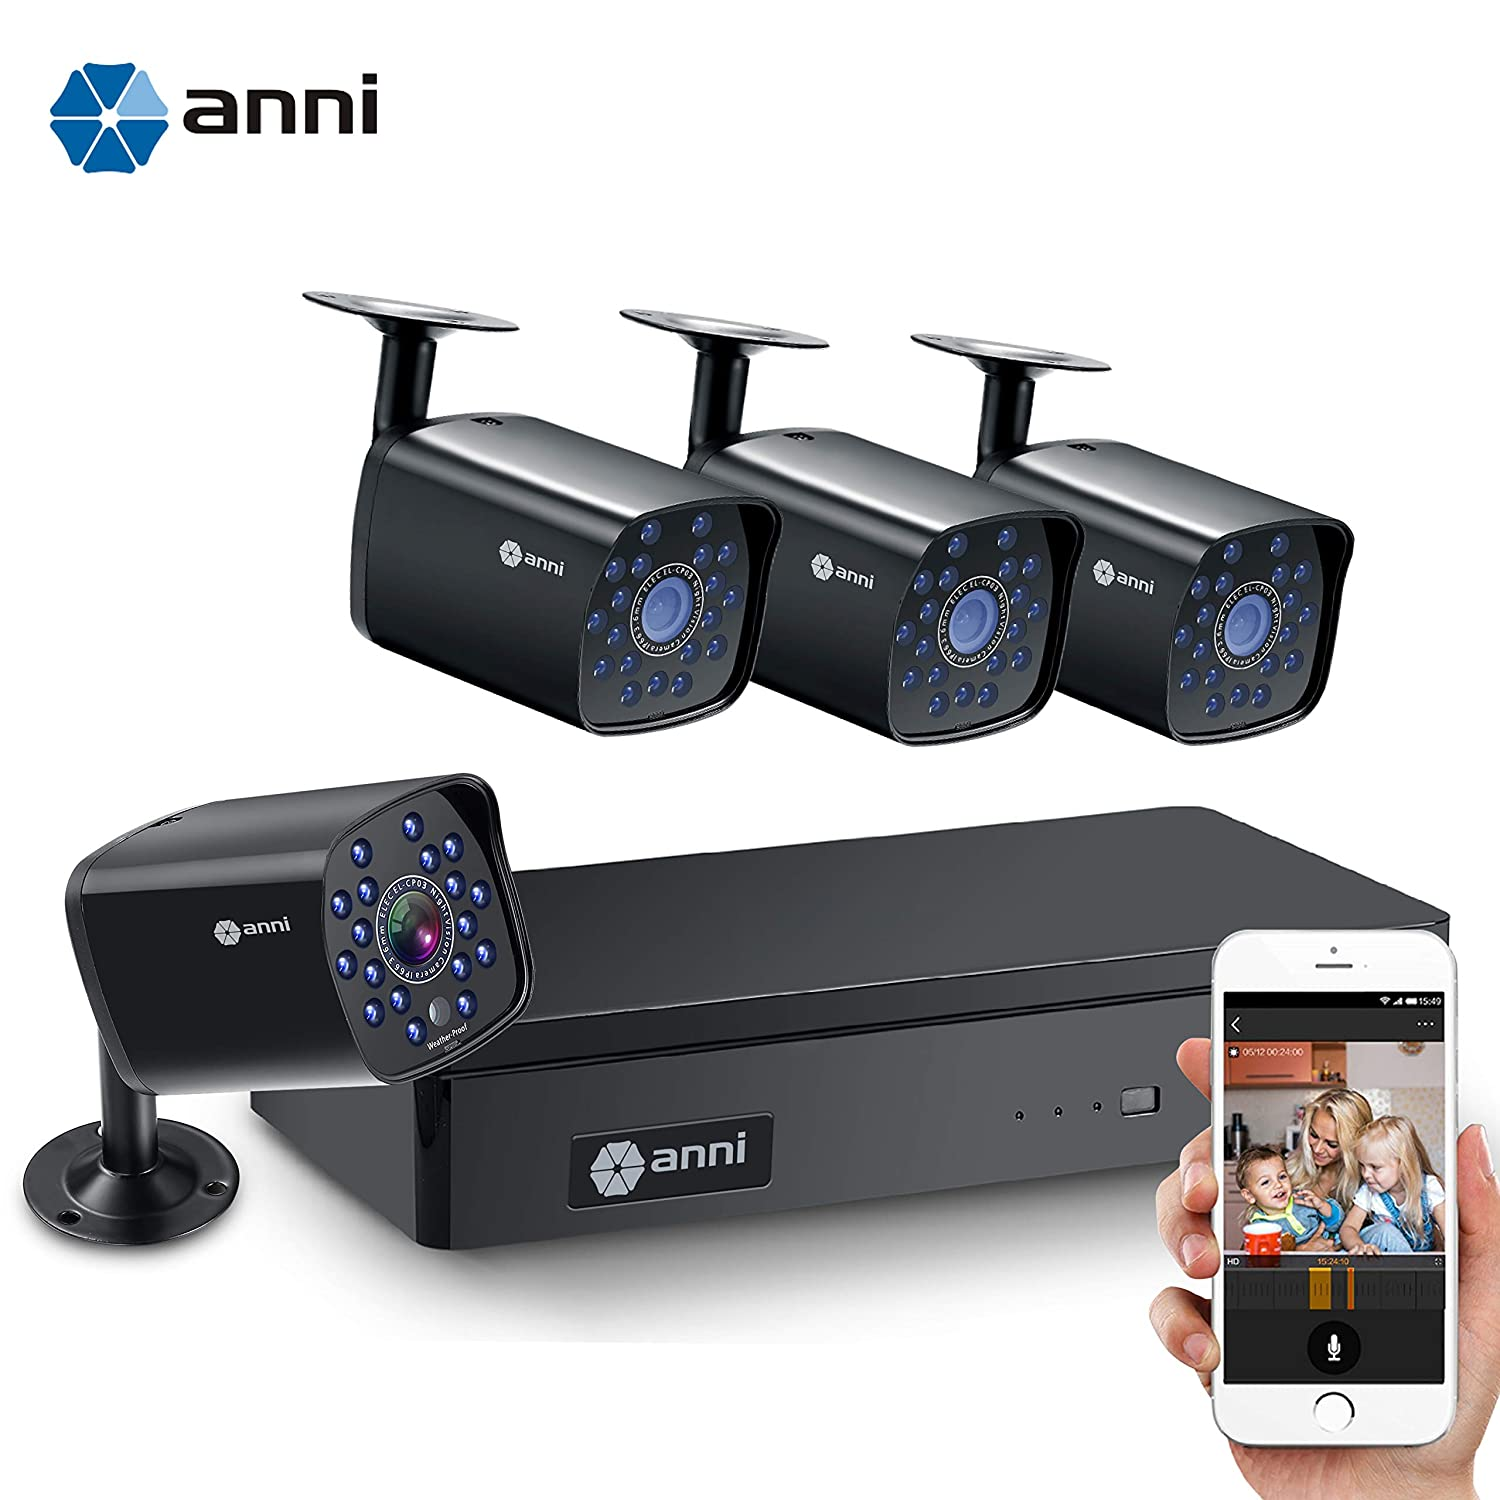 4 Channel H.264+Home Security Cameras System Wired, 4pcs HD 1080N 1.0MP Surveillance Bullet Cameras with CCTV DVR Video Recorder, IP65 Weatherproof for Indoor Outdoor use, Motion Alert Remote Access